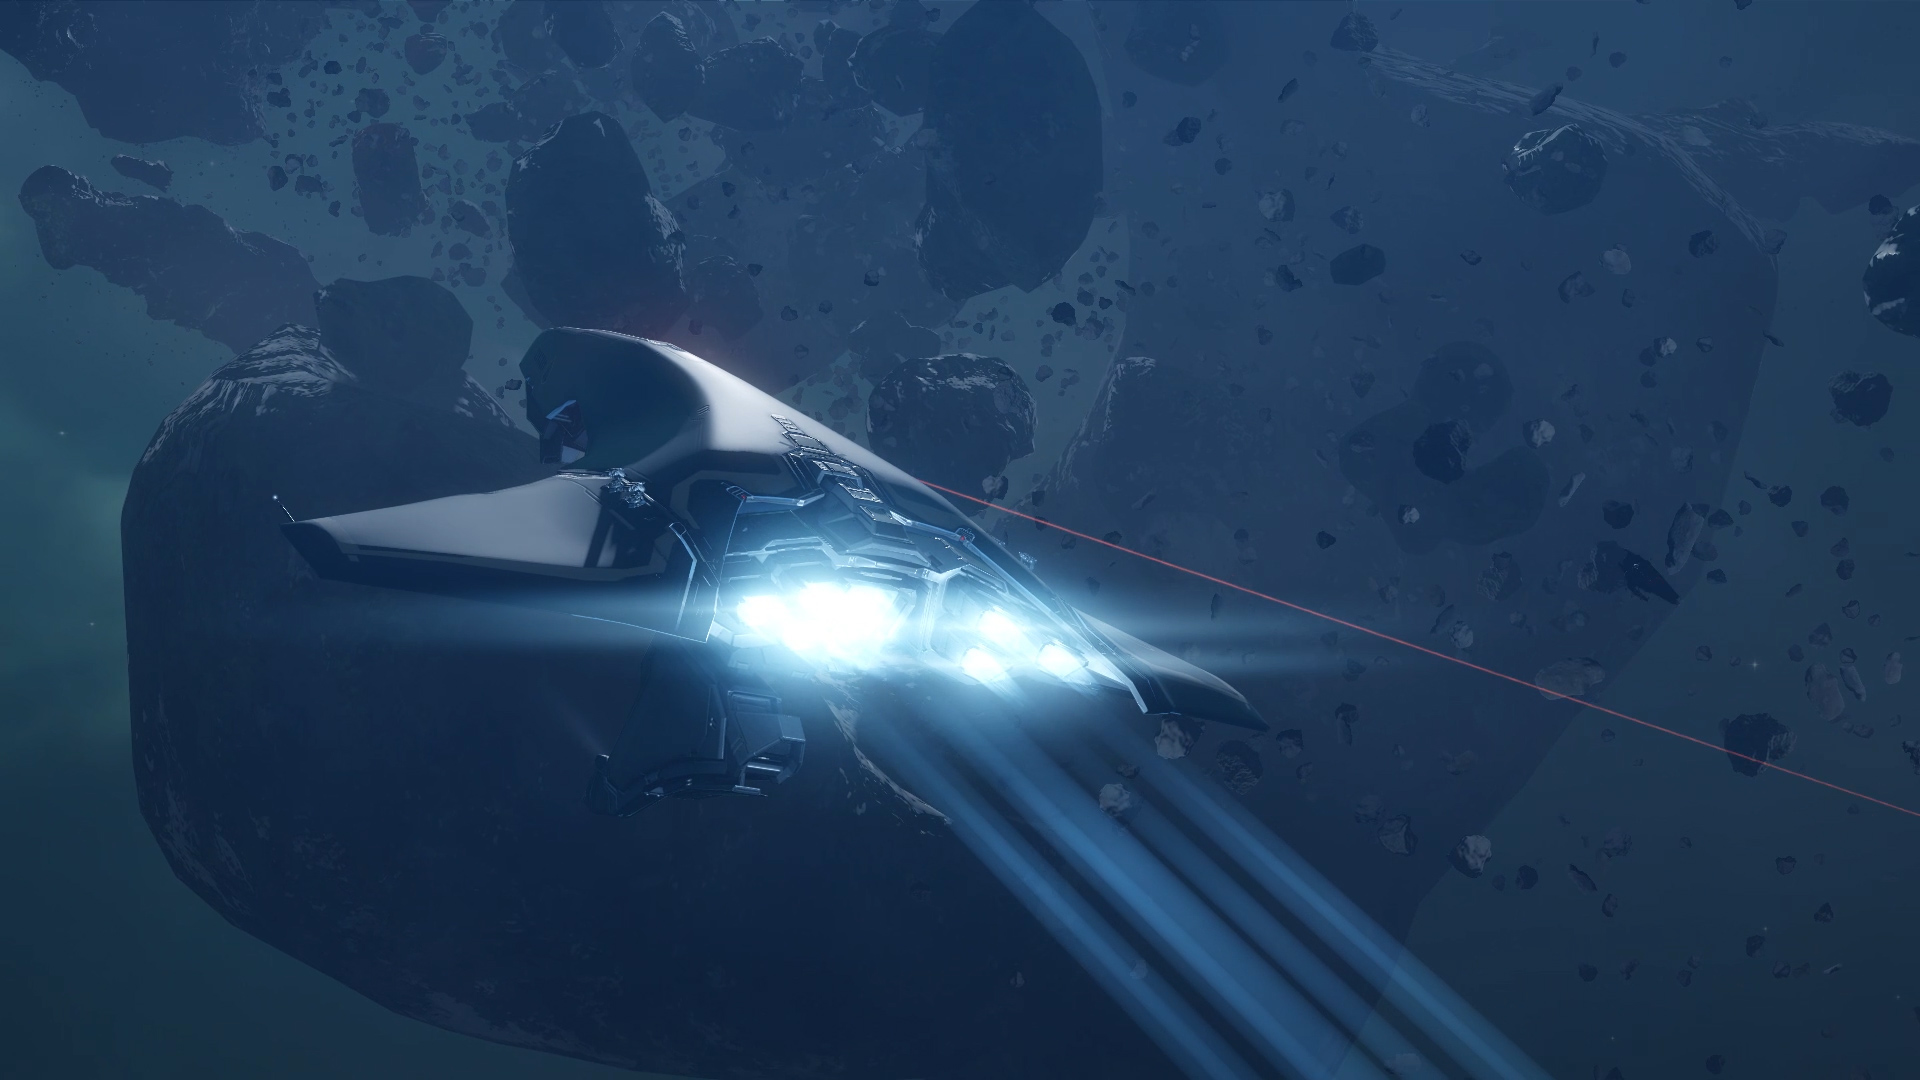 EVE Online's next expansion pits players against a deadly